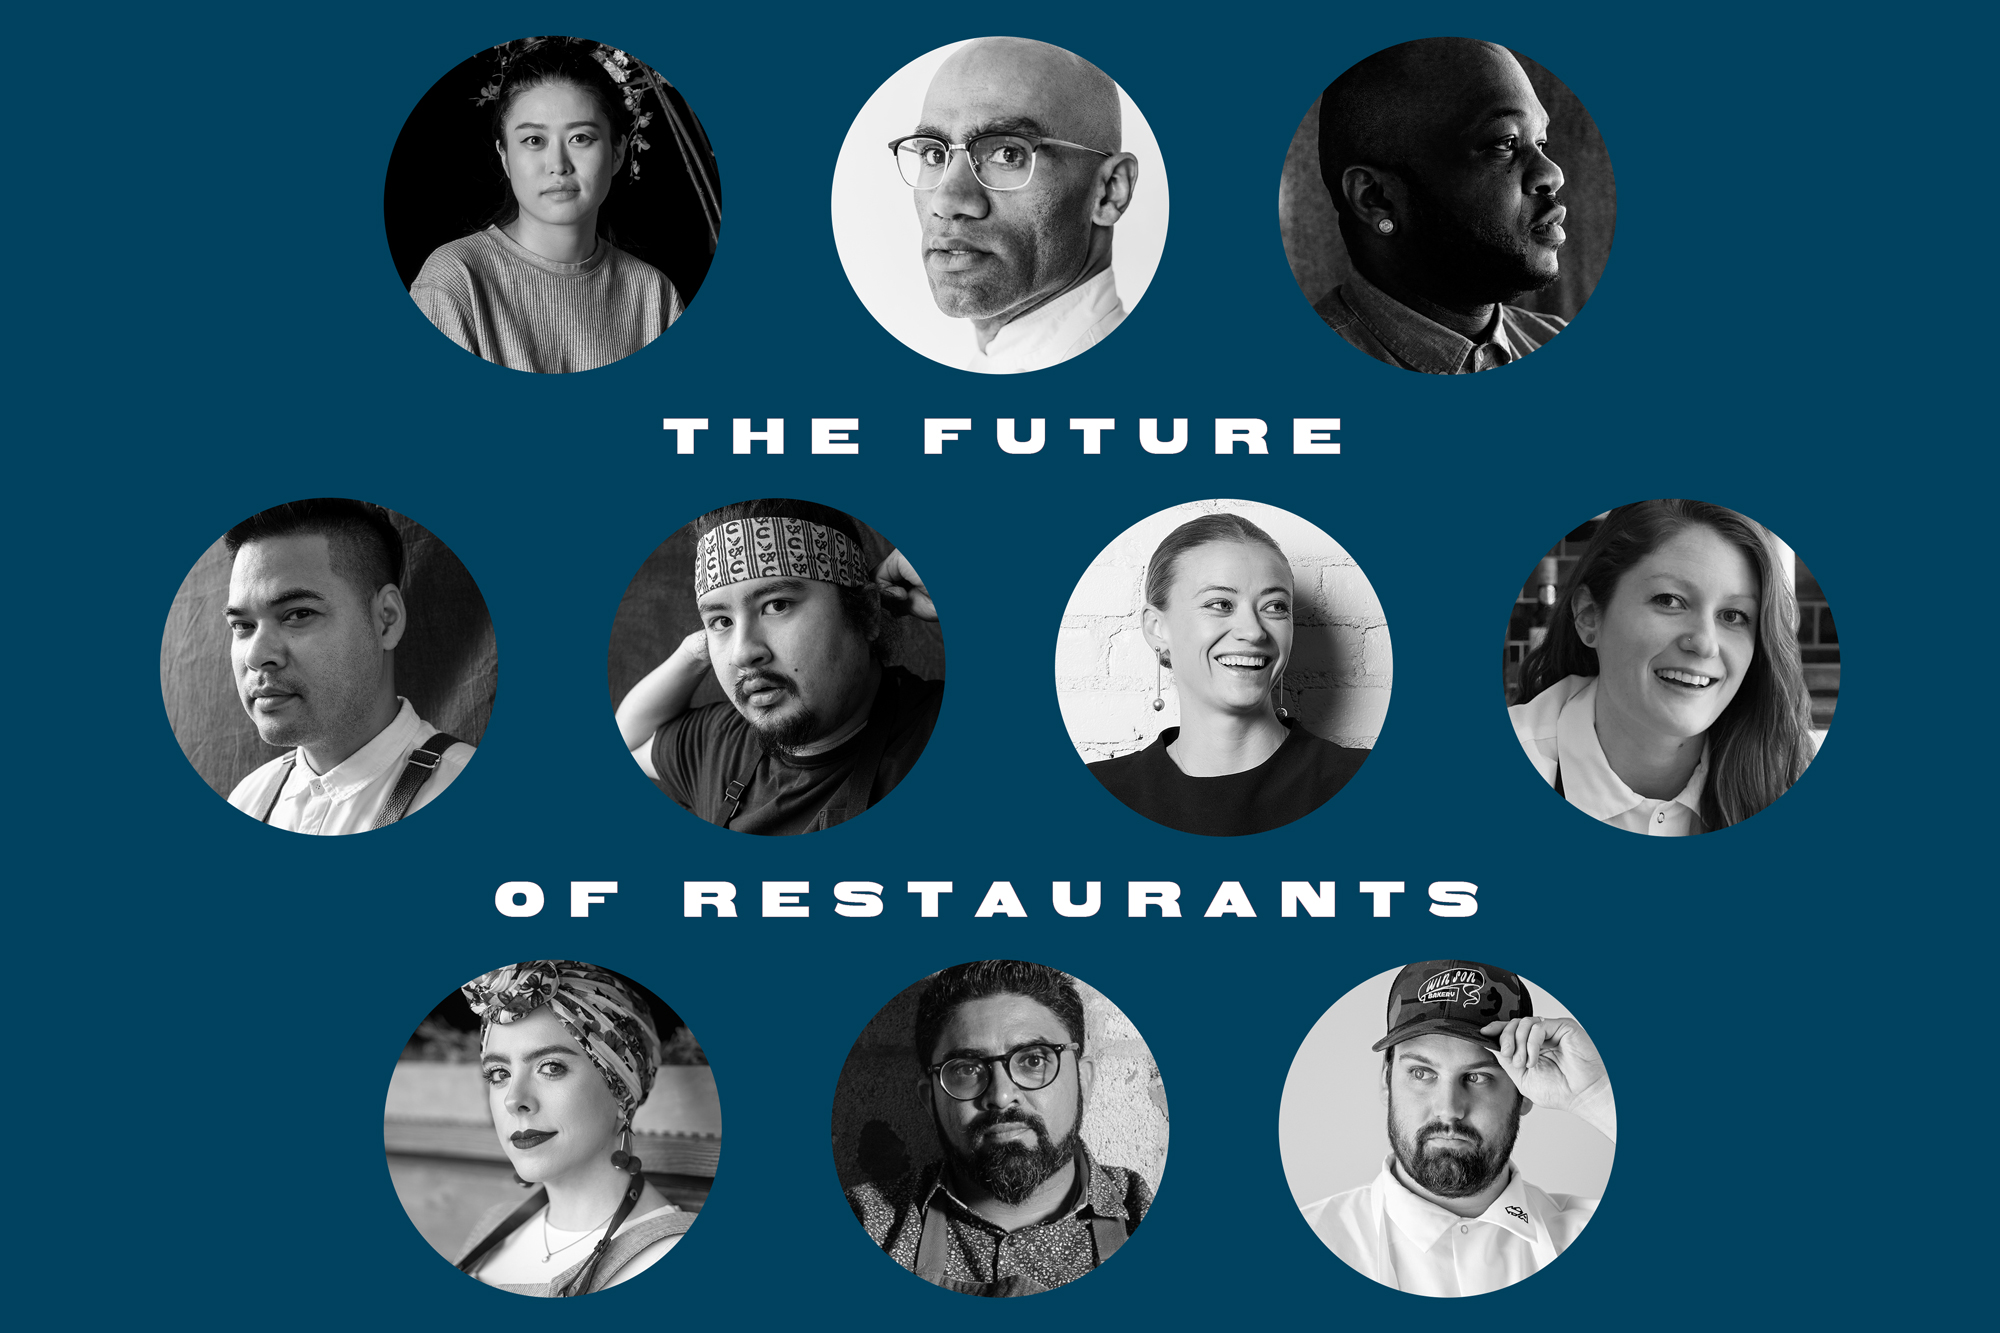 The Future of Restaurants